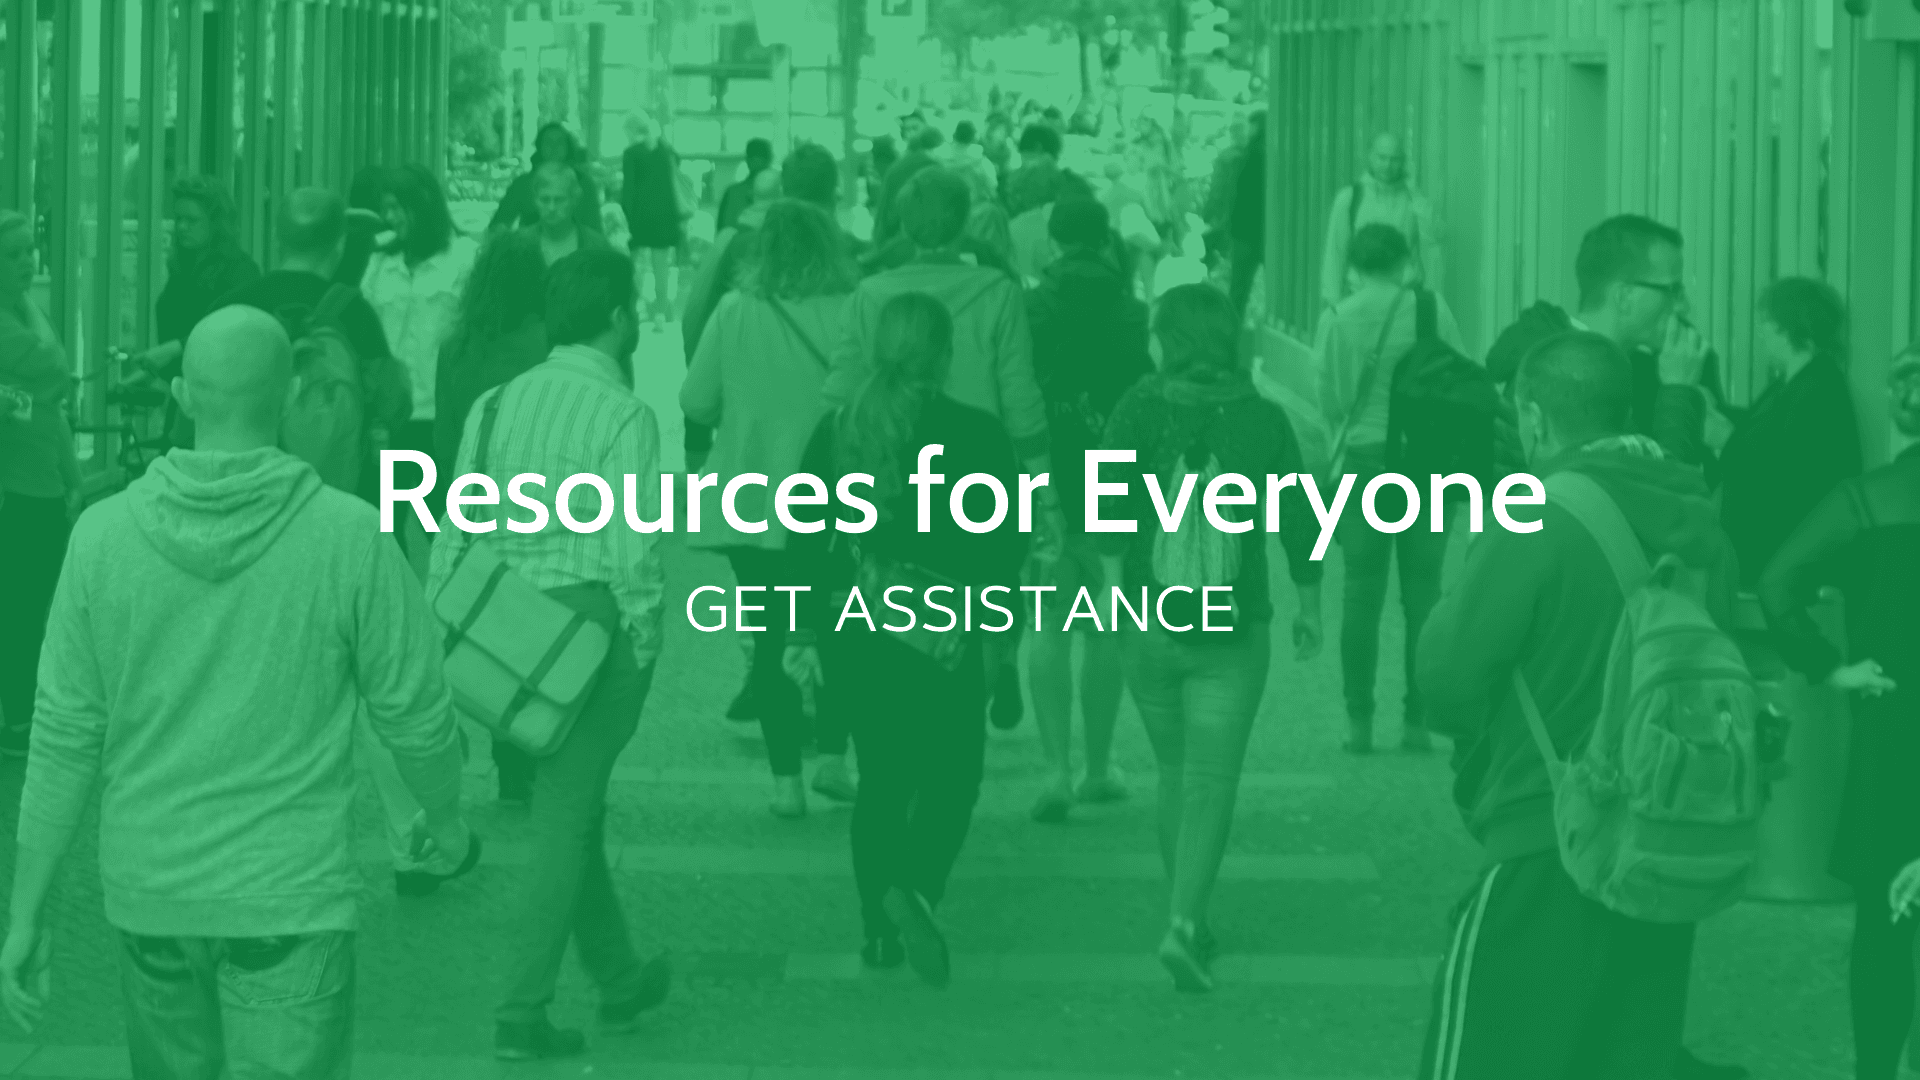 Resources for Everyone